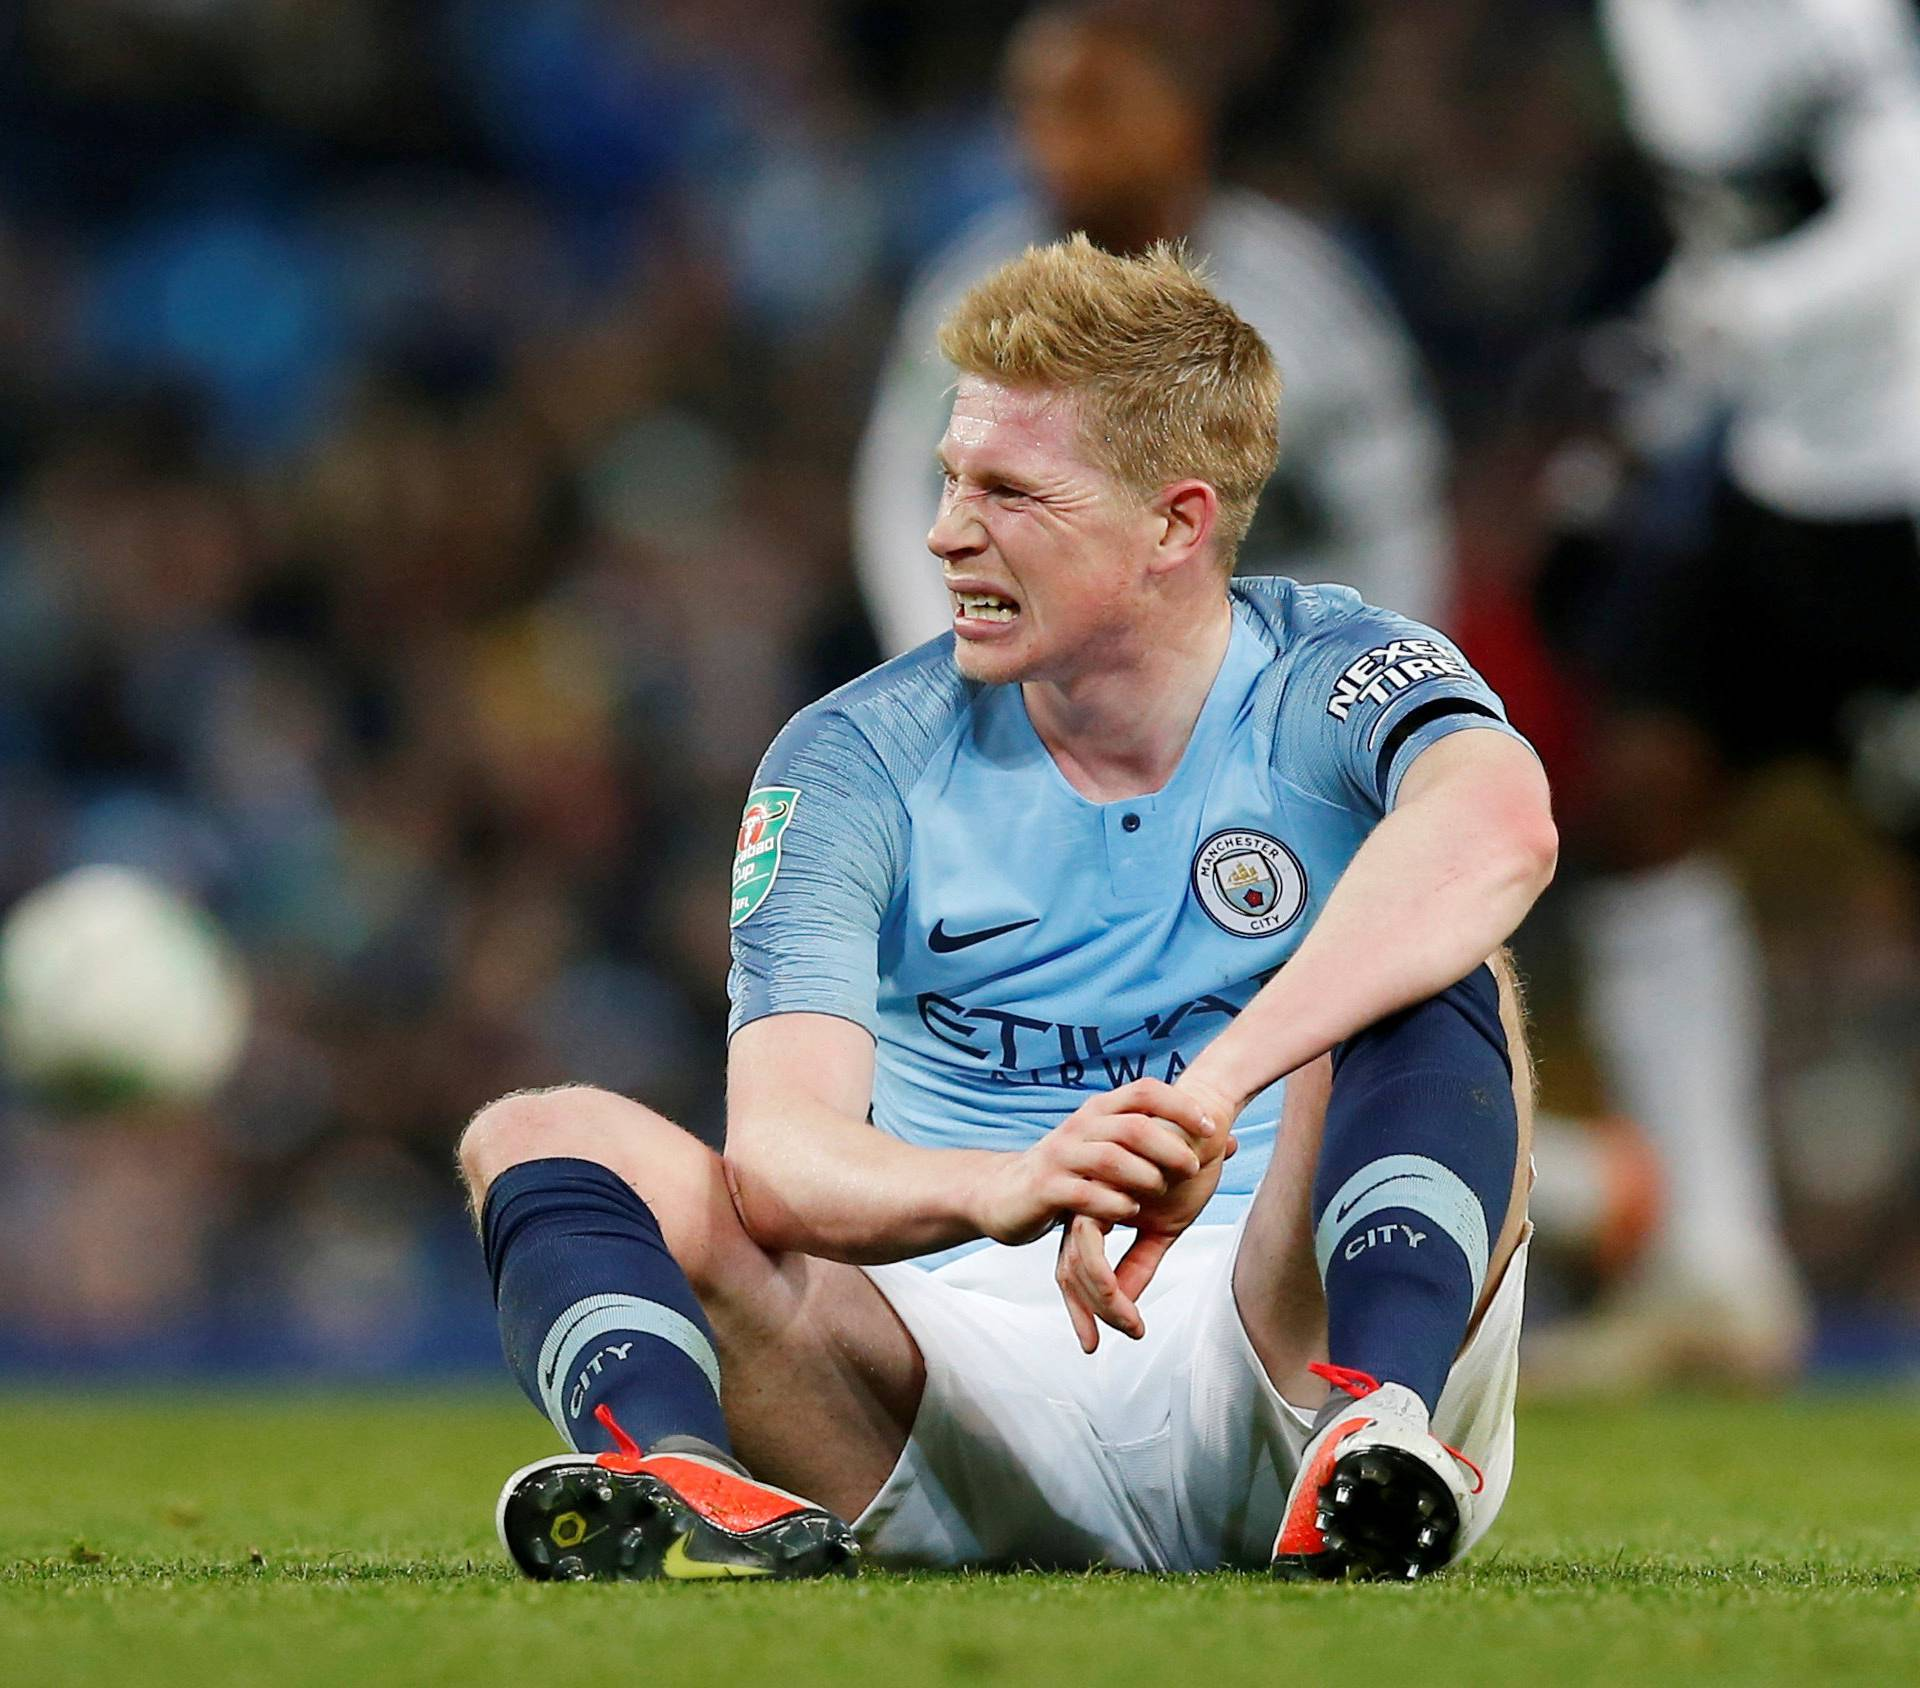 FILE PHOTO: Carabao Cup Fourth Round - Manchester City v Fulham